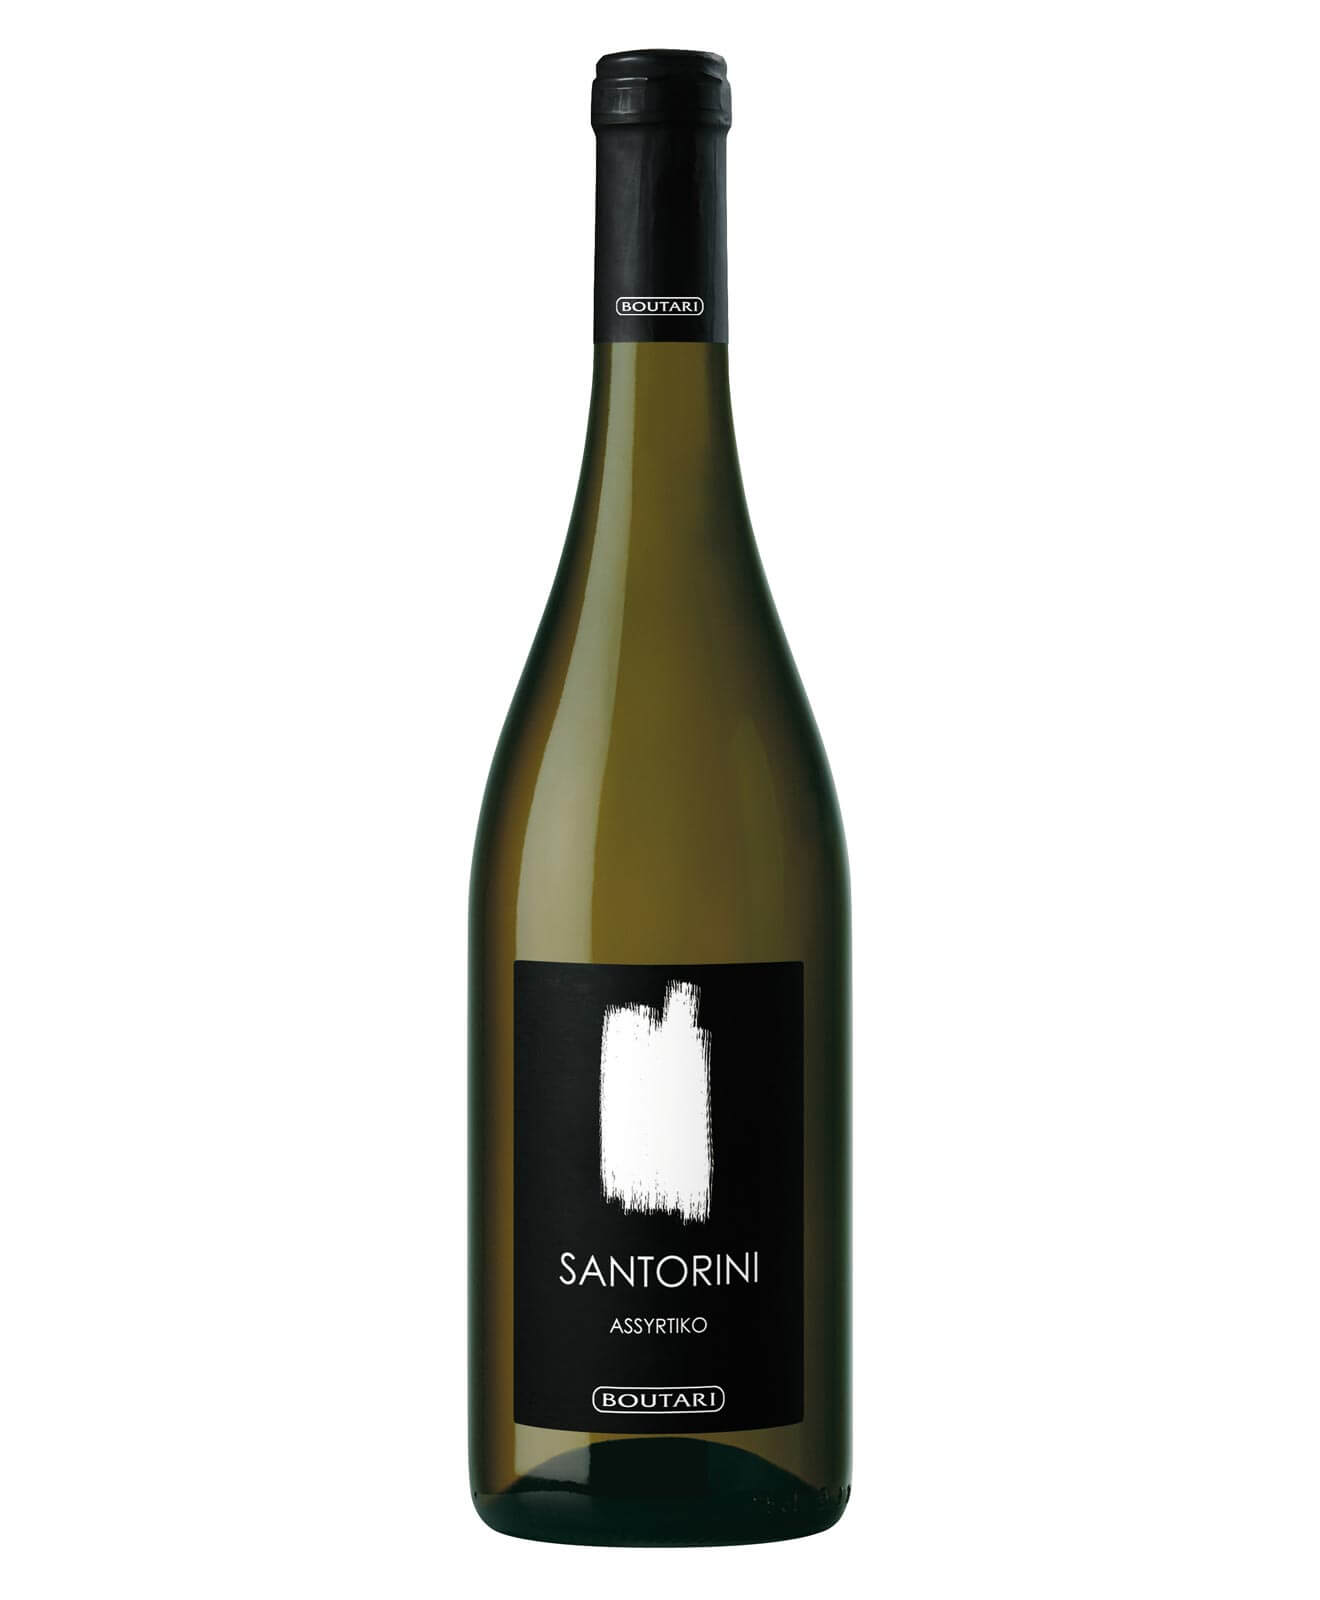 2017 Santorini Boutari, bottle on white